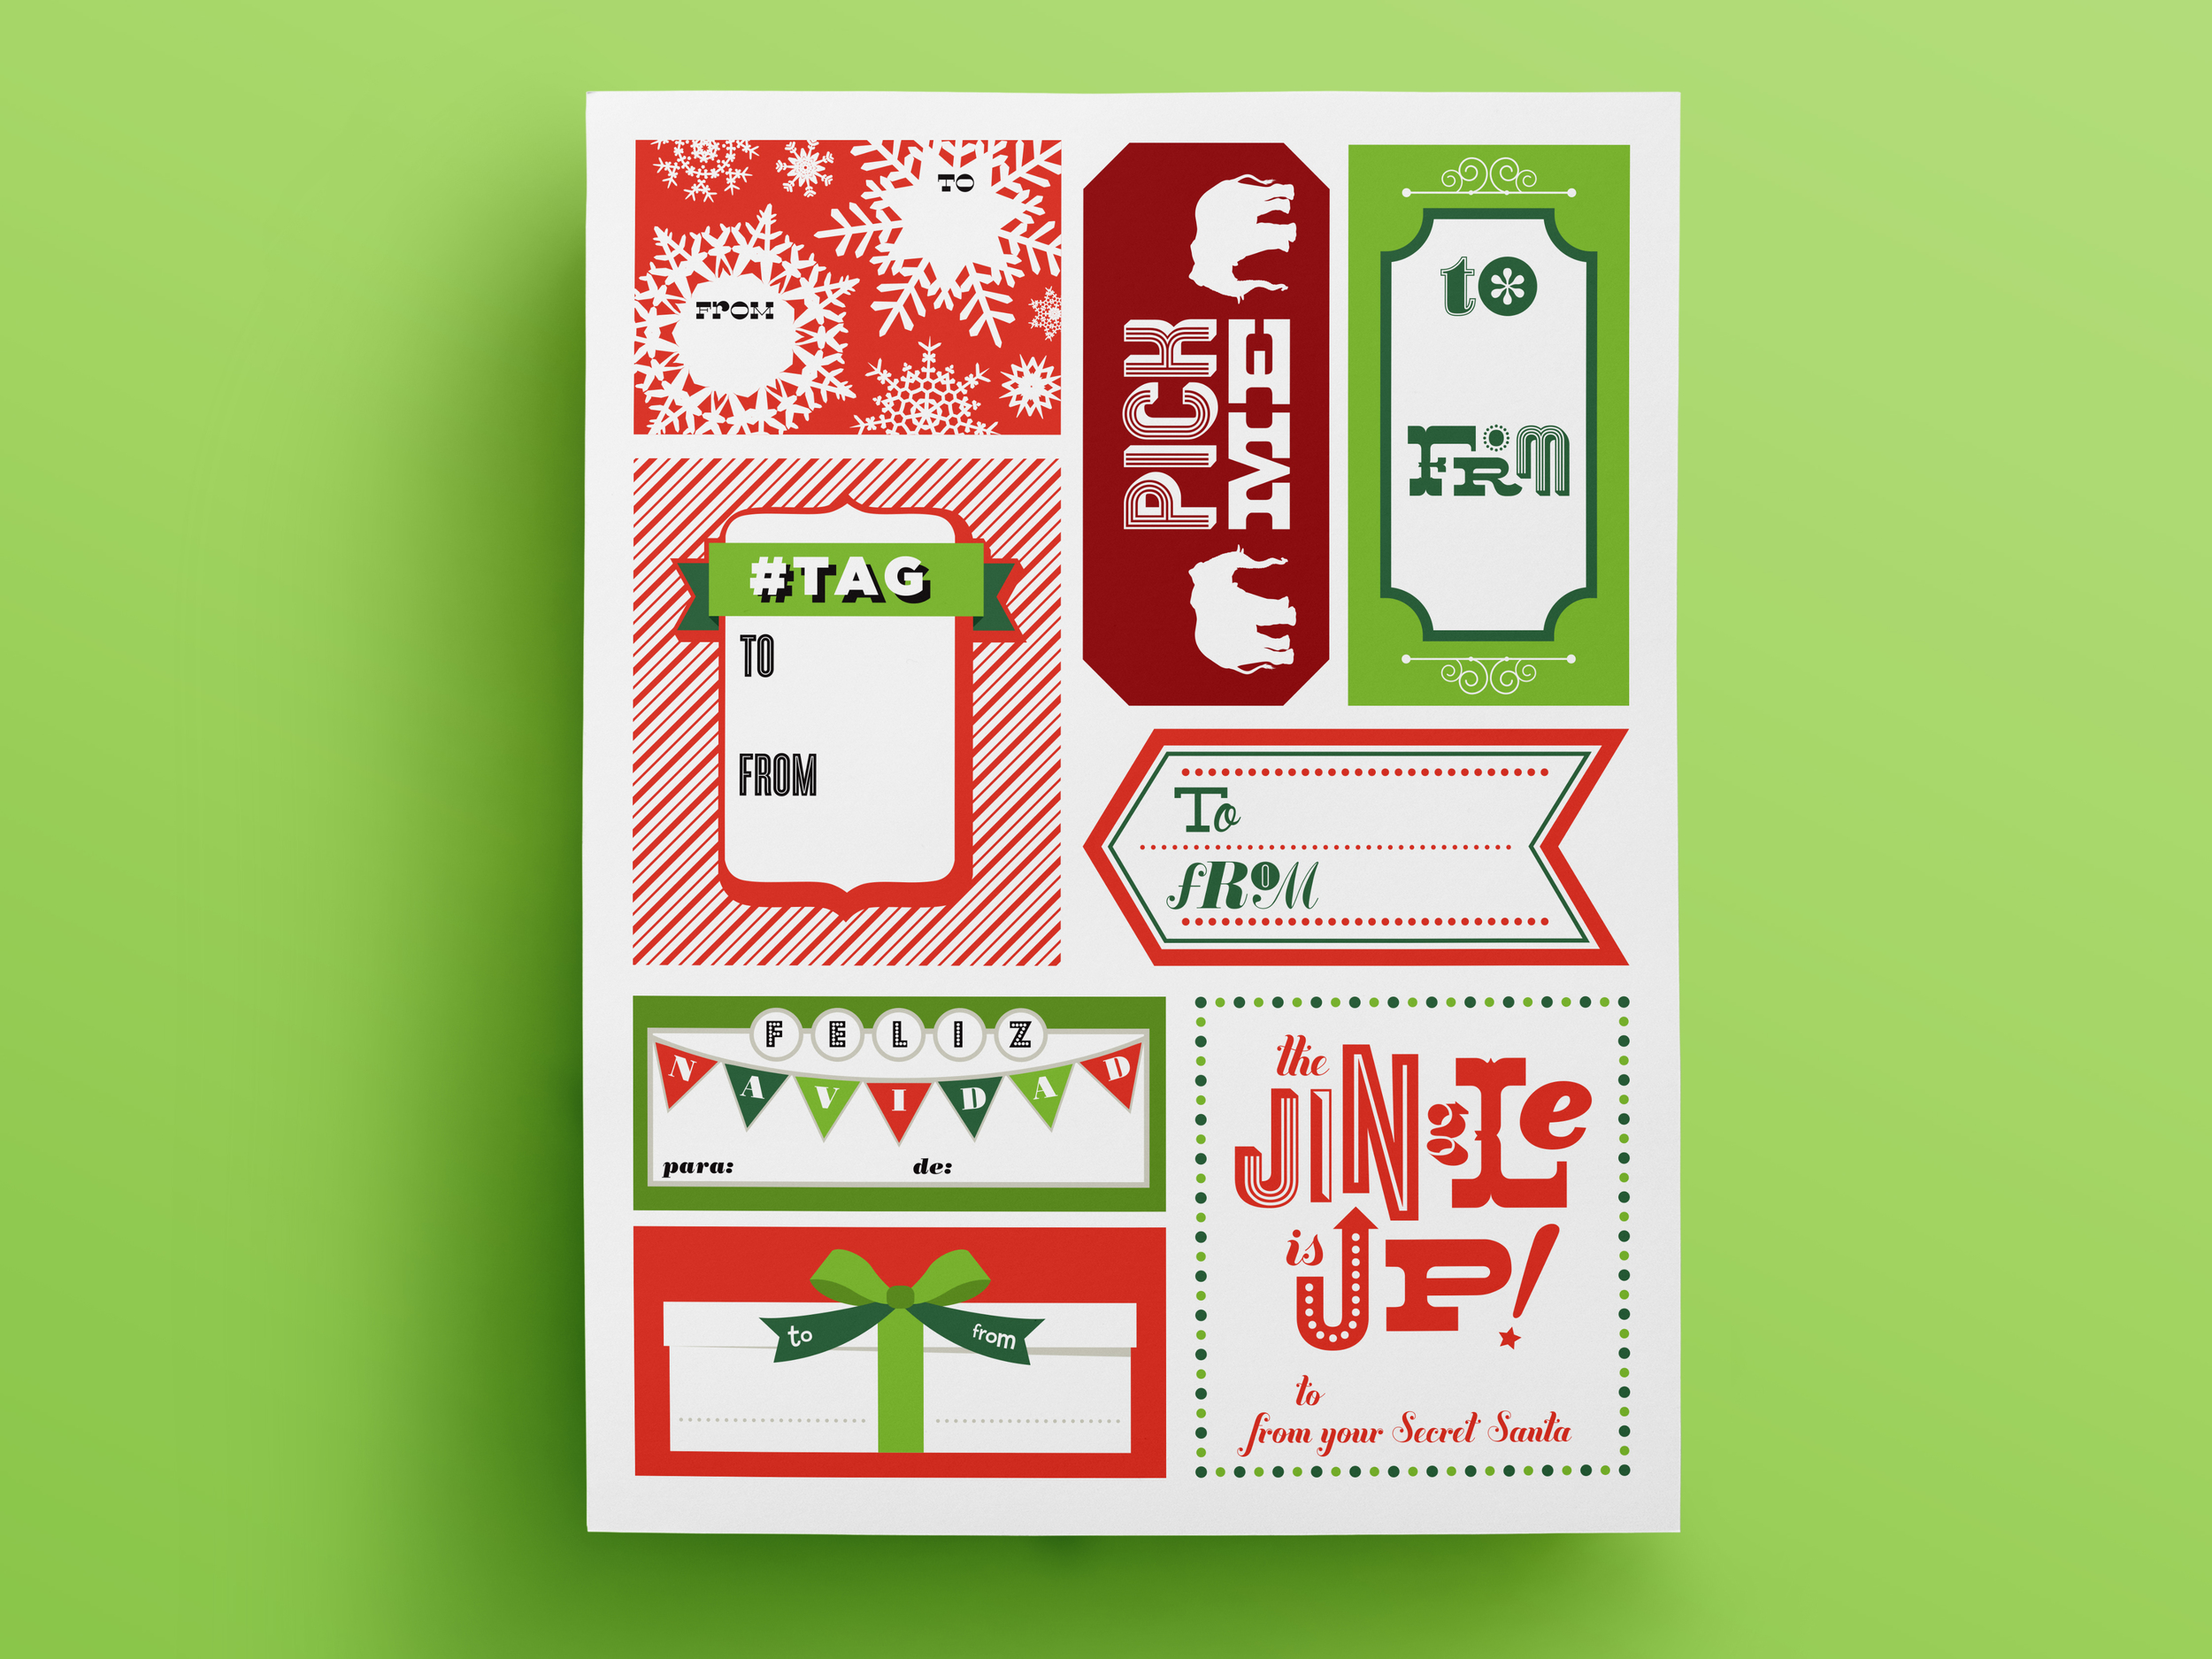 AIGAPromo_Holiday2014GiftTags_Mockup.jpg